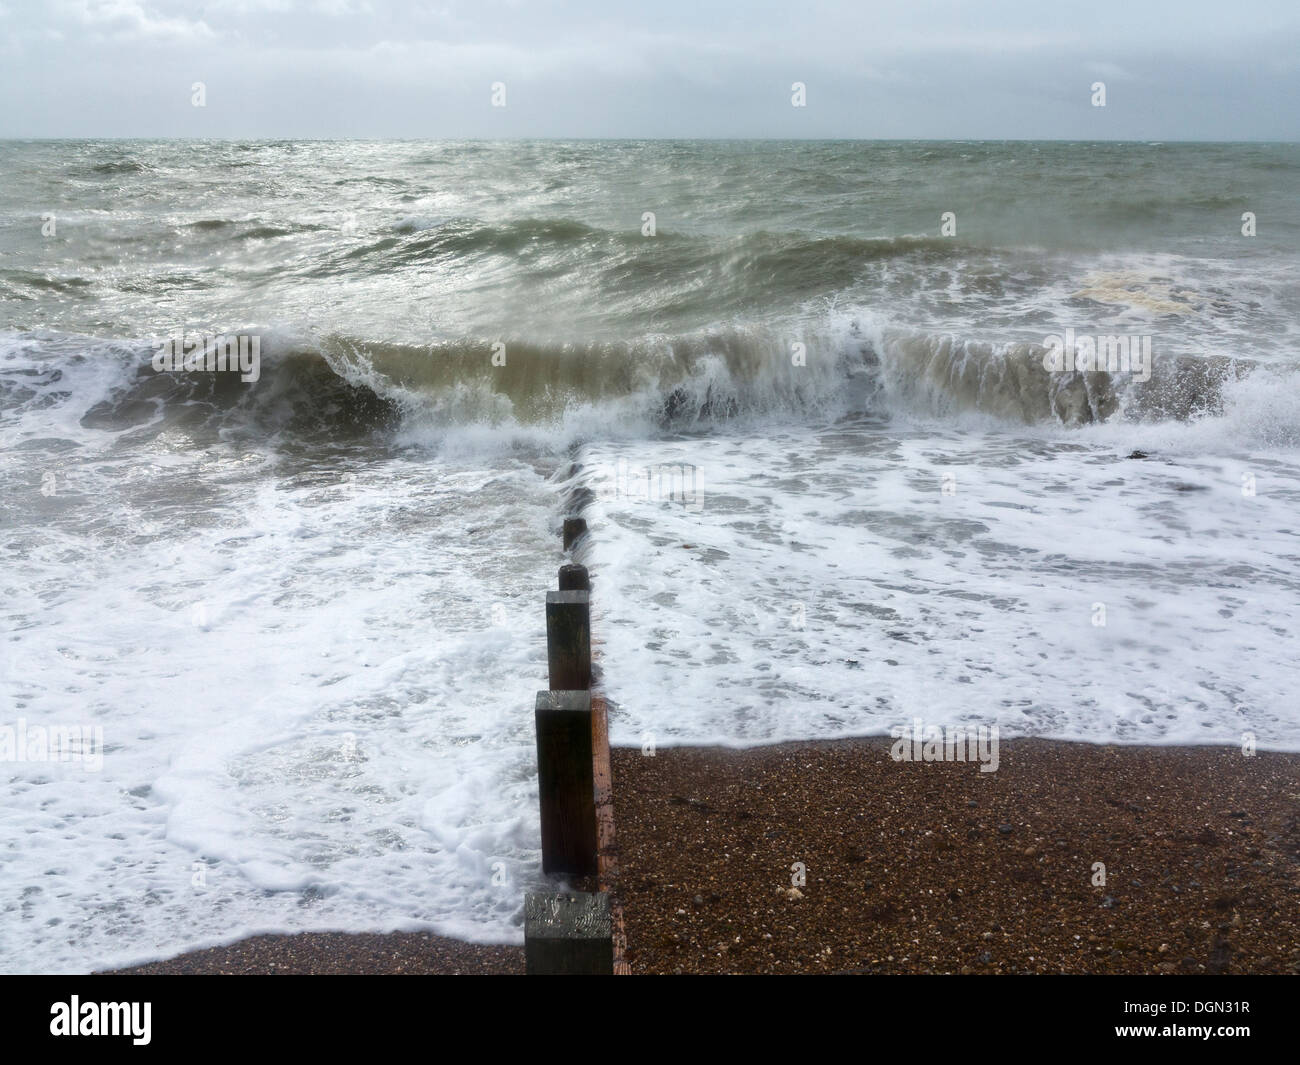 A rough sea breaking on a groyne on a pebble beach with a stormy sky on the horizon, Worthing England - Stock Image